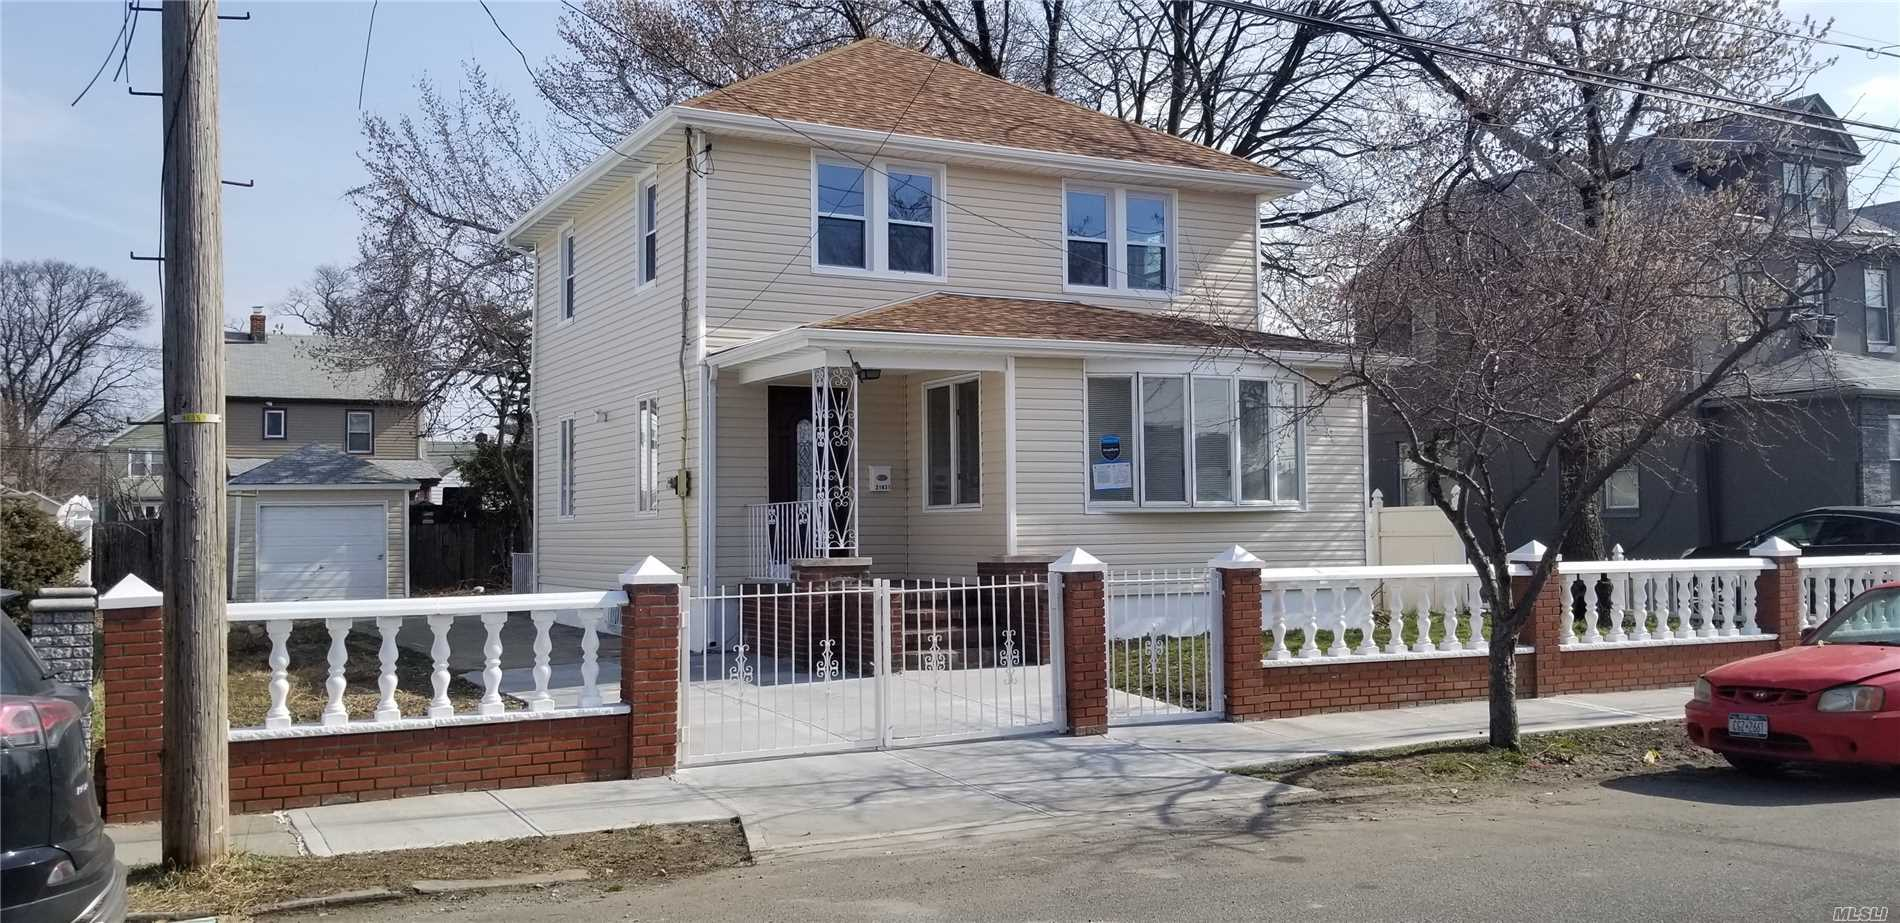 If space is your concern then look no further..This Huge 1 family, Four bedroom, with finished basement,  Renovated with Hardwood Floors, Stainless steel appliances, New Roof, New Siding, washer & dryer, New Concrete and Huge yard Big enough for trucks, bucks & ducks. Won't last.